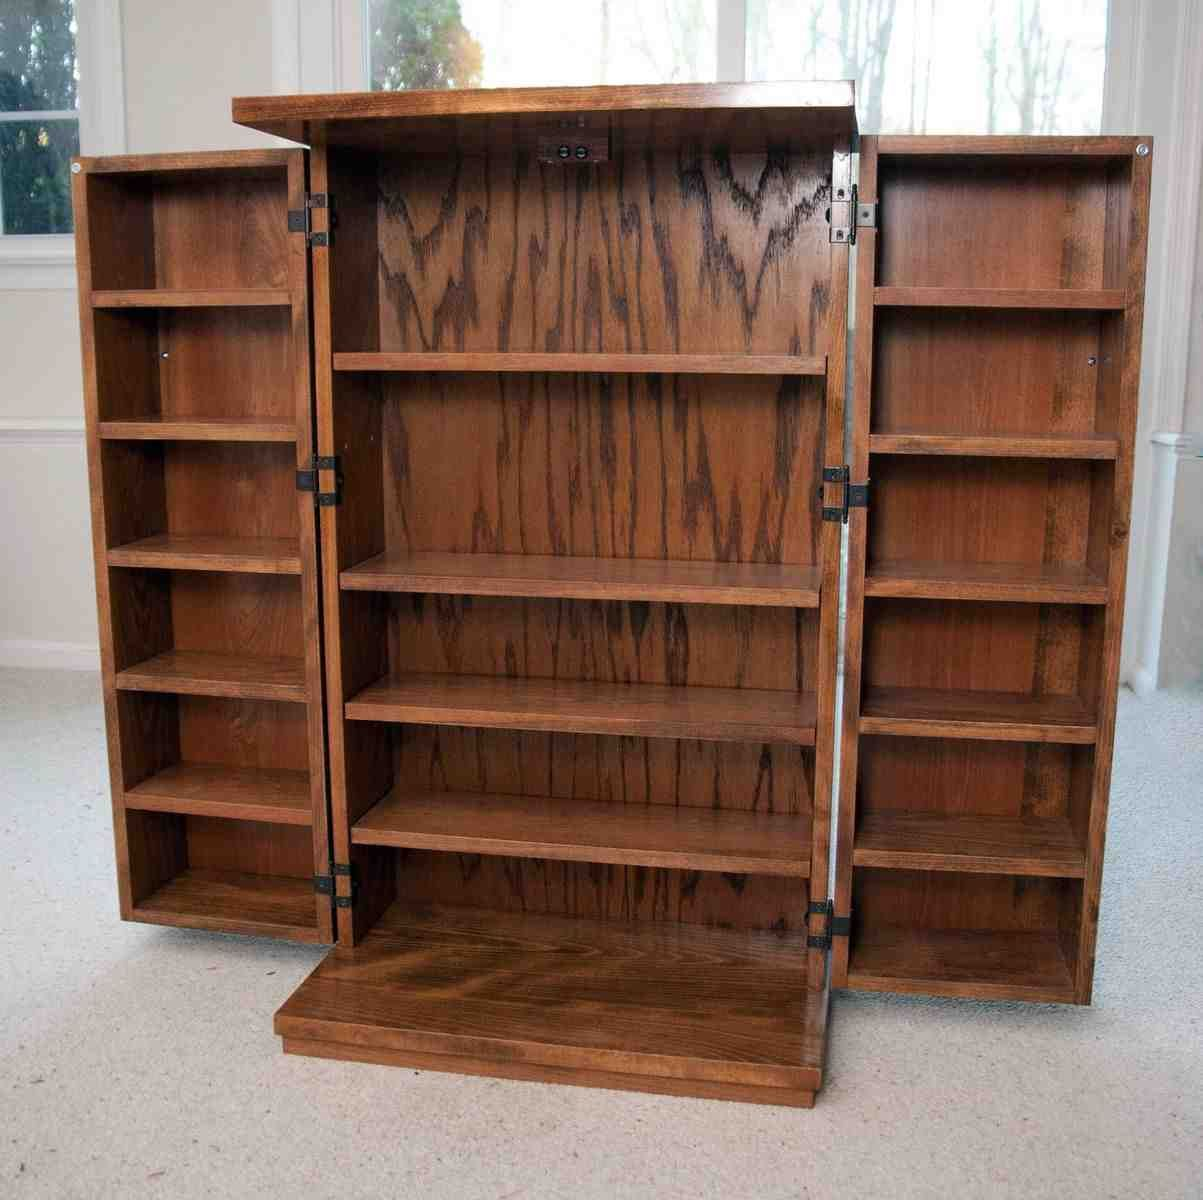 Dvd Storage Units 25 43 Dvd Cd Storage Unit Ideas You Had No Clue About Dvd